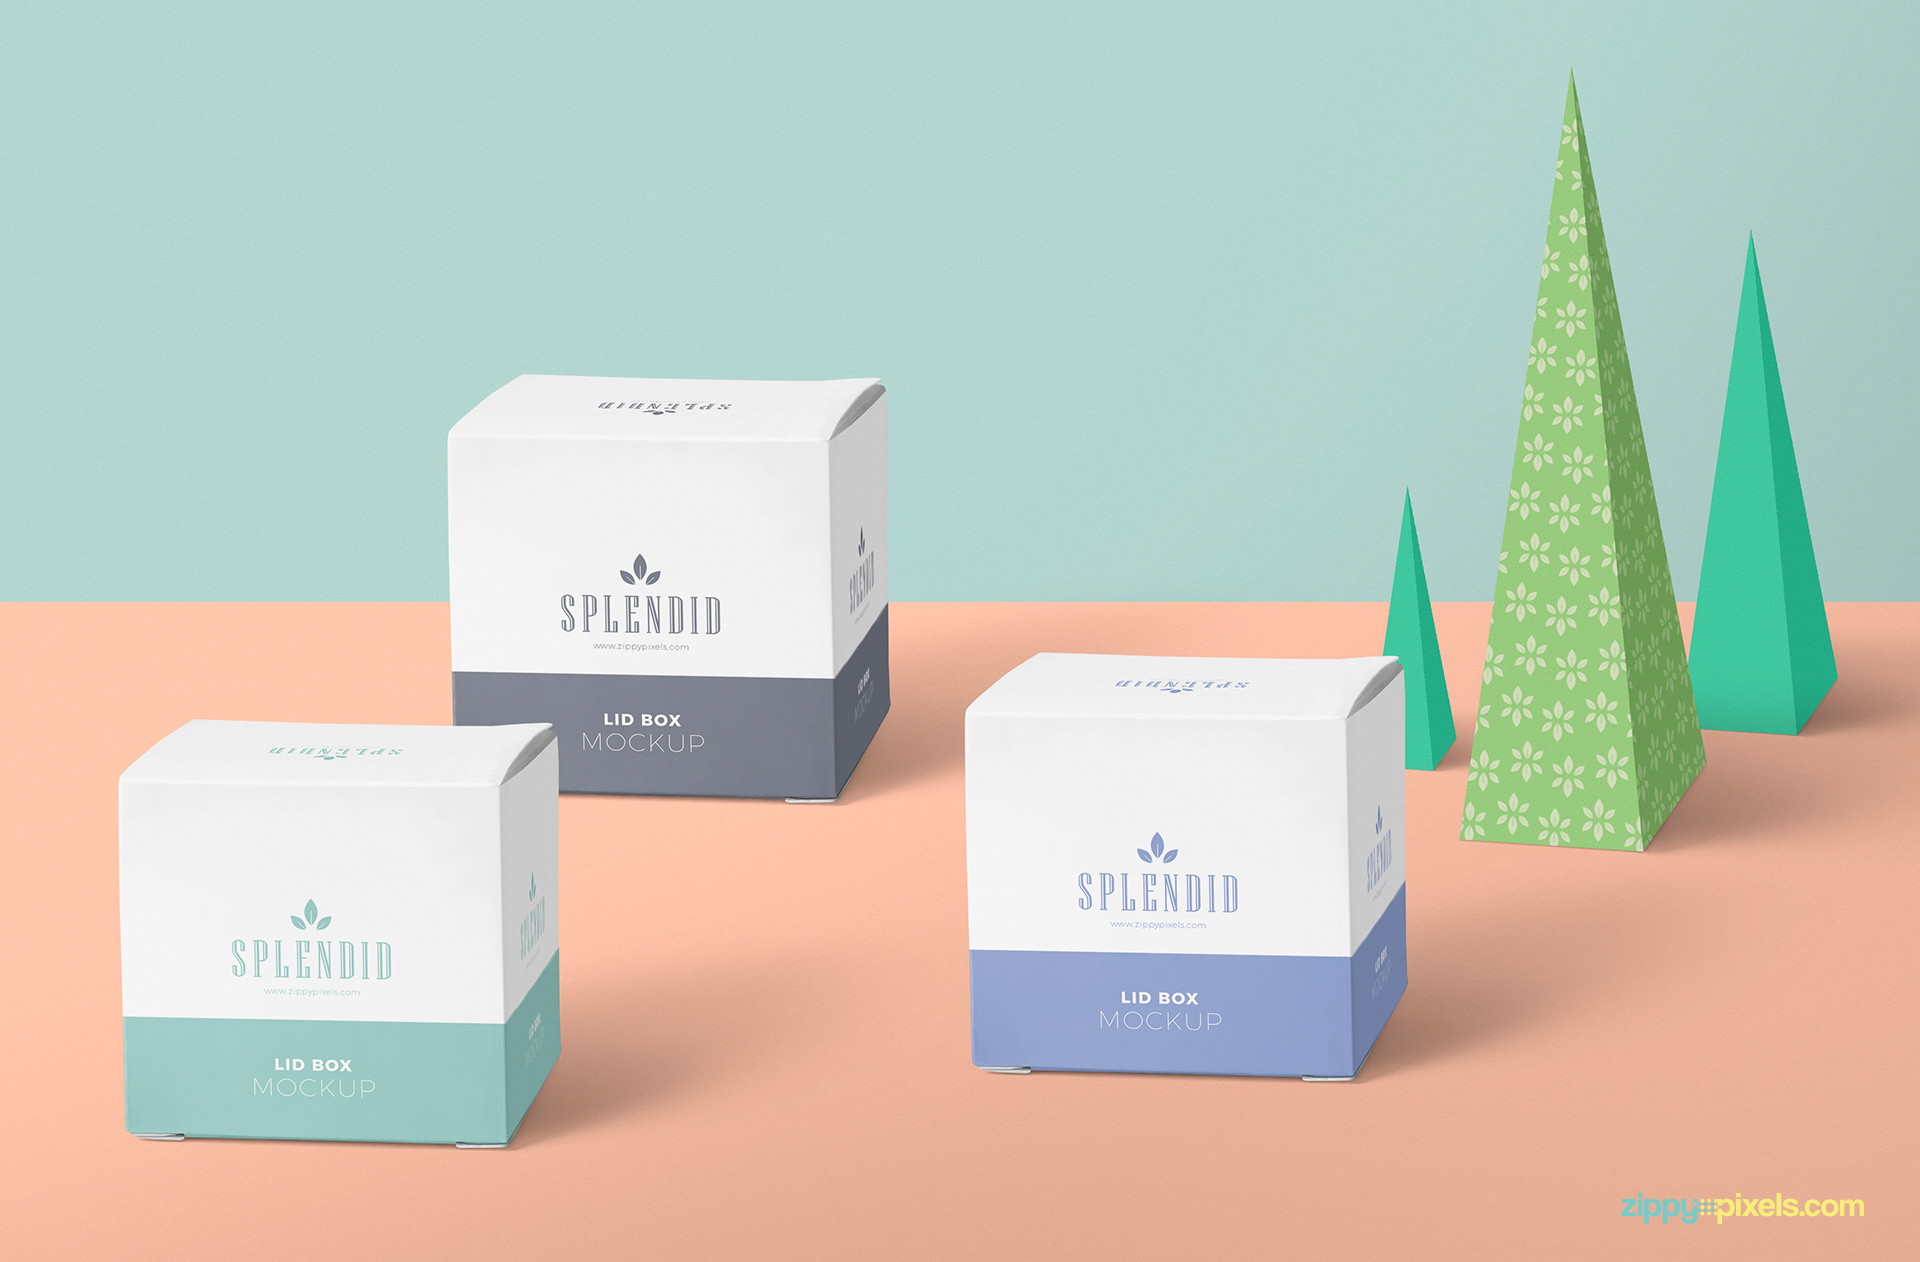 Save · what are the effects of noodle boxes? Free Paper Box Mockup Psd Zippypixels